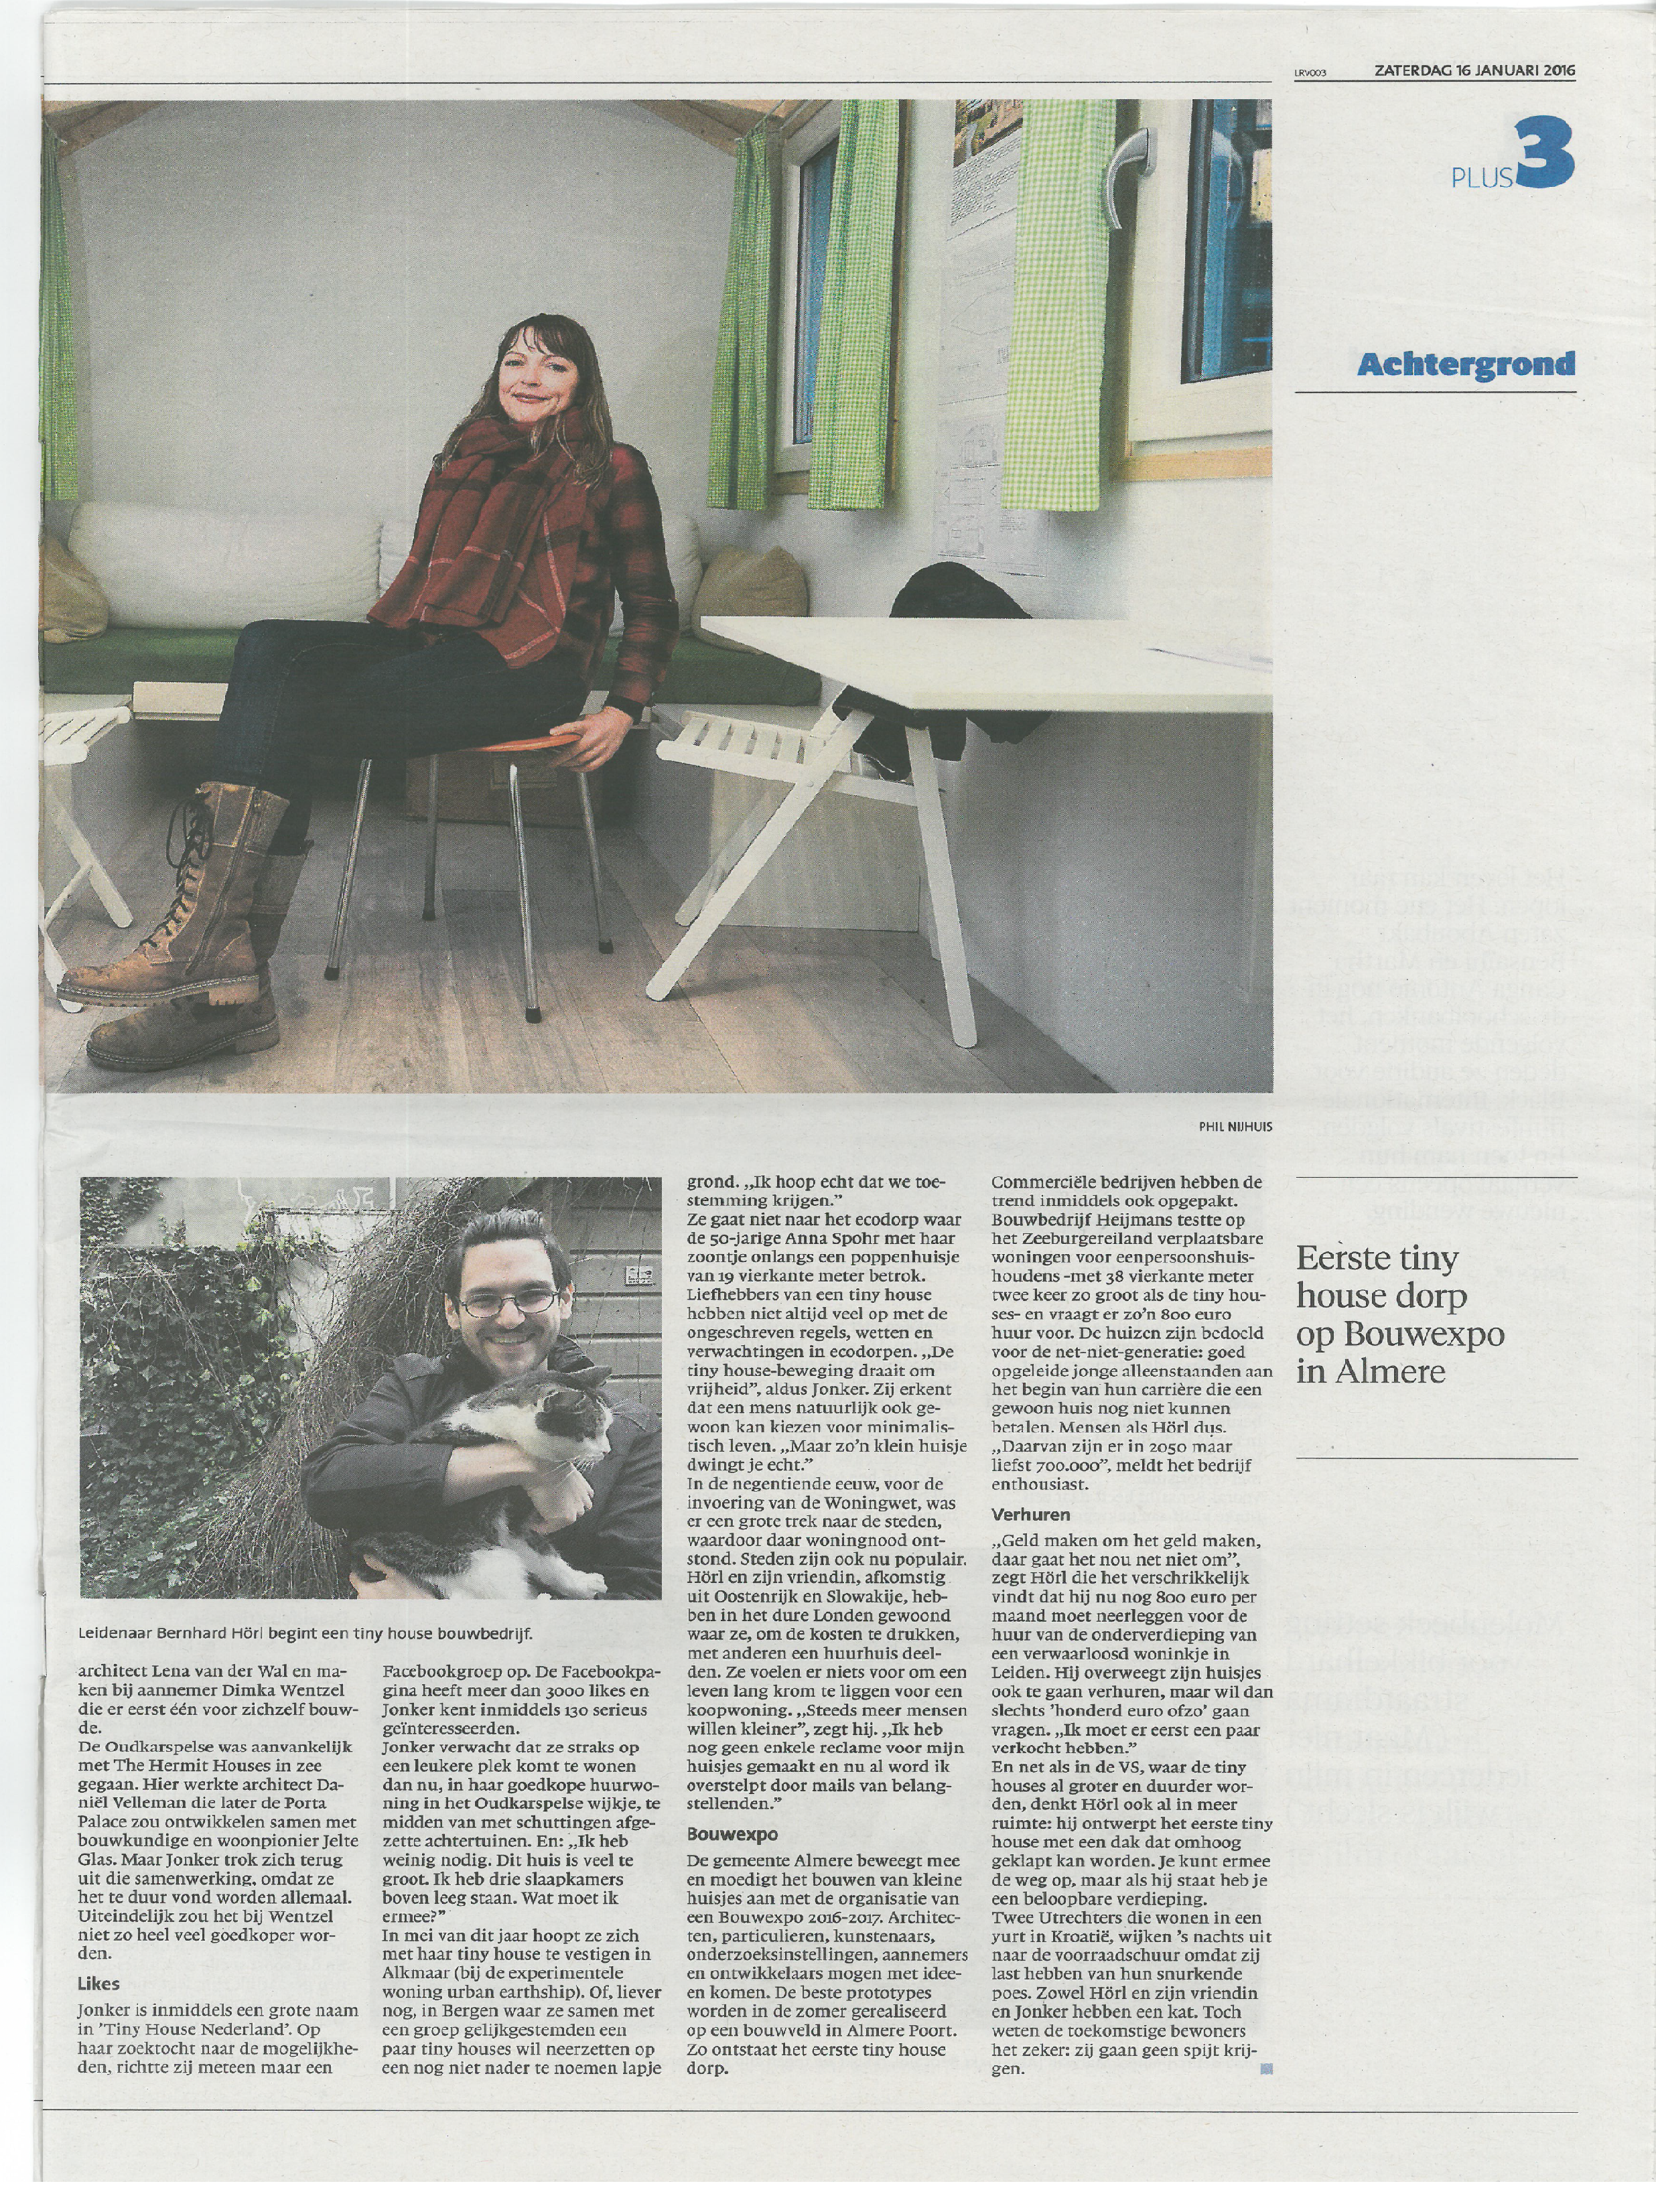 2016-01-16 Noordhollands Dagblad 3